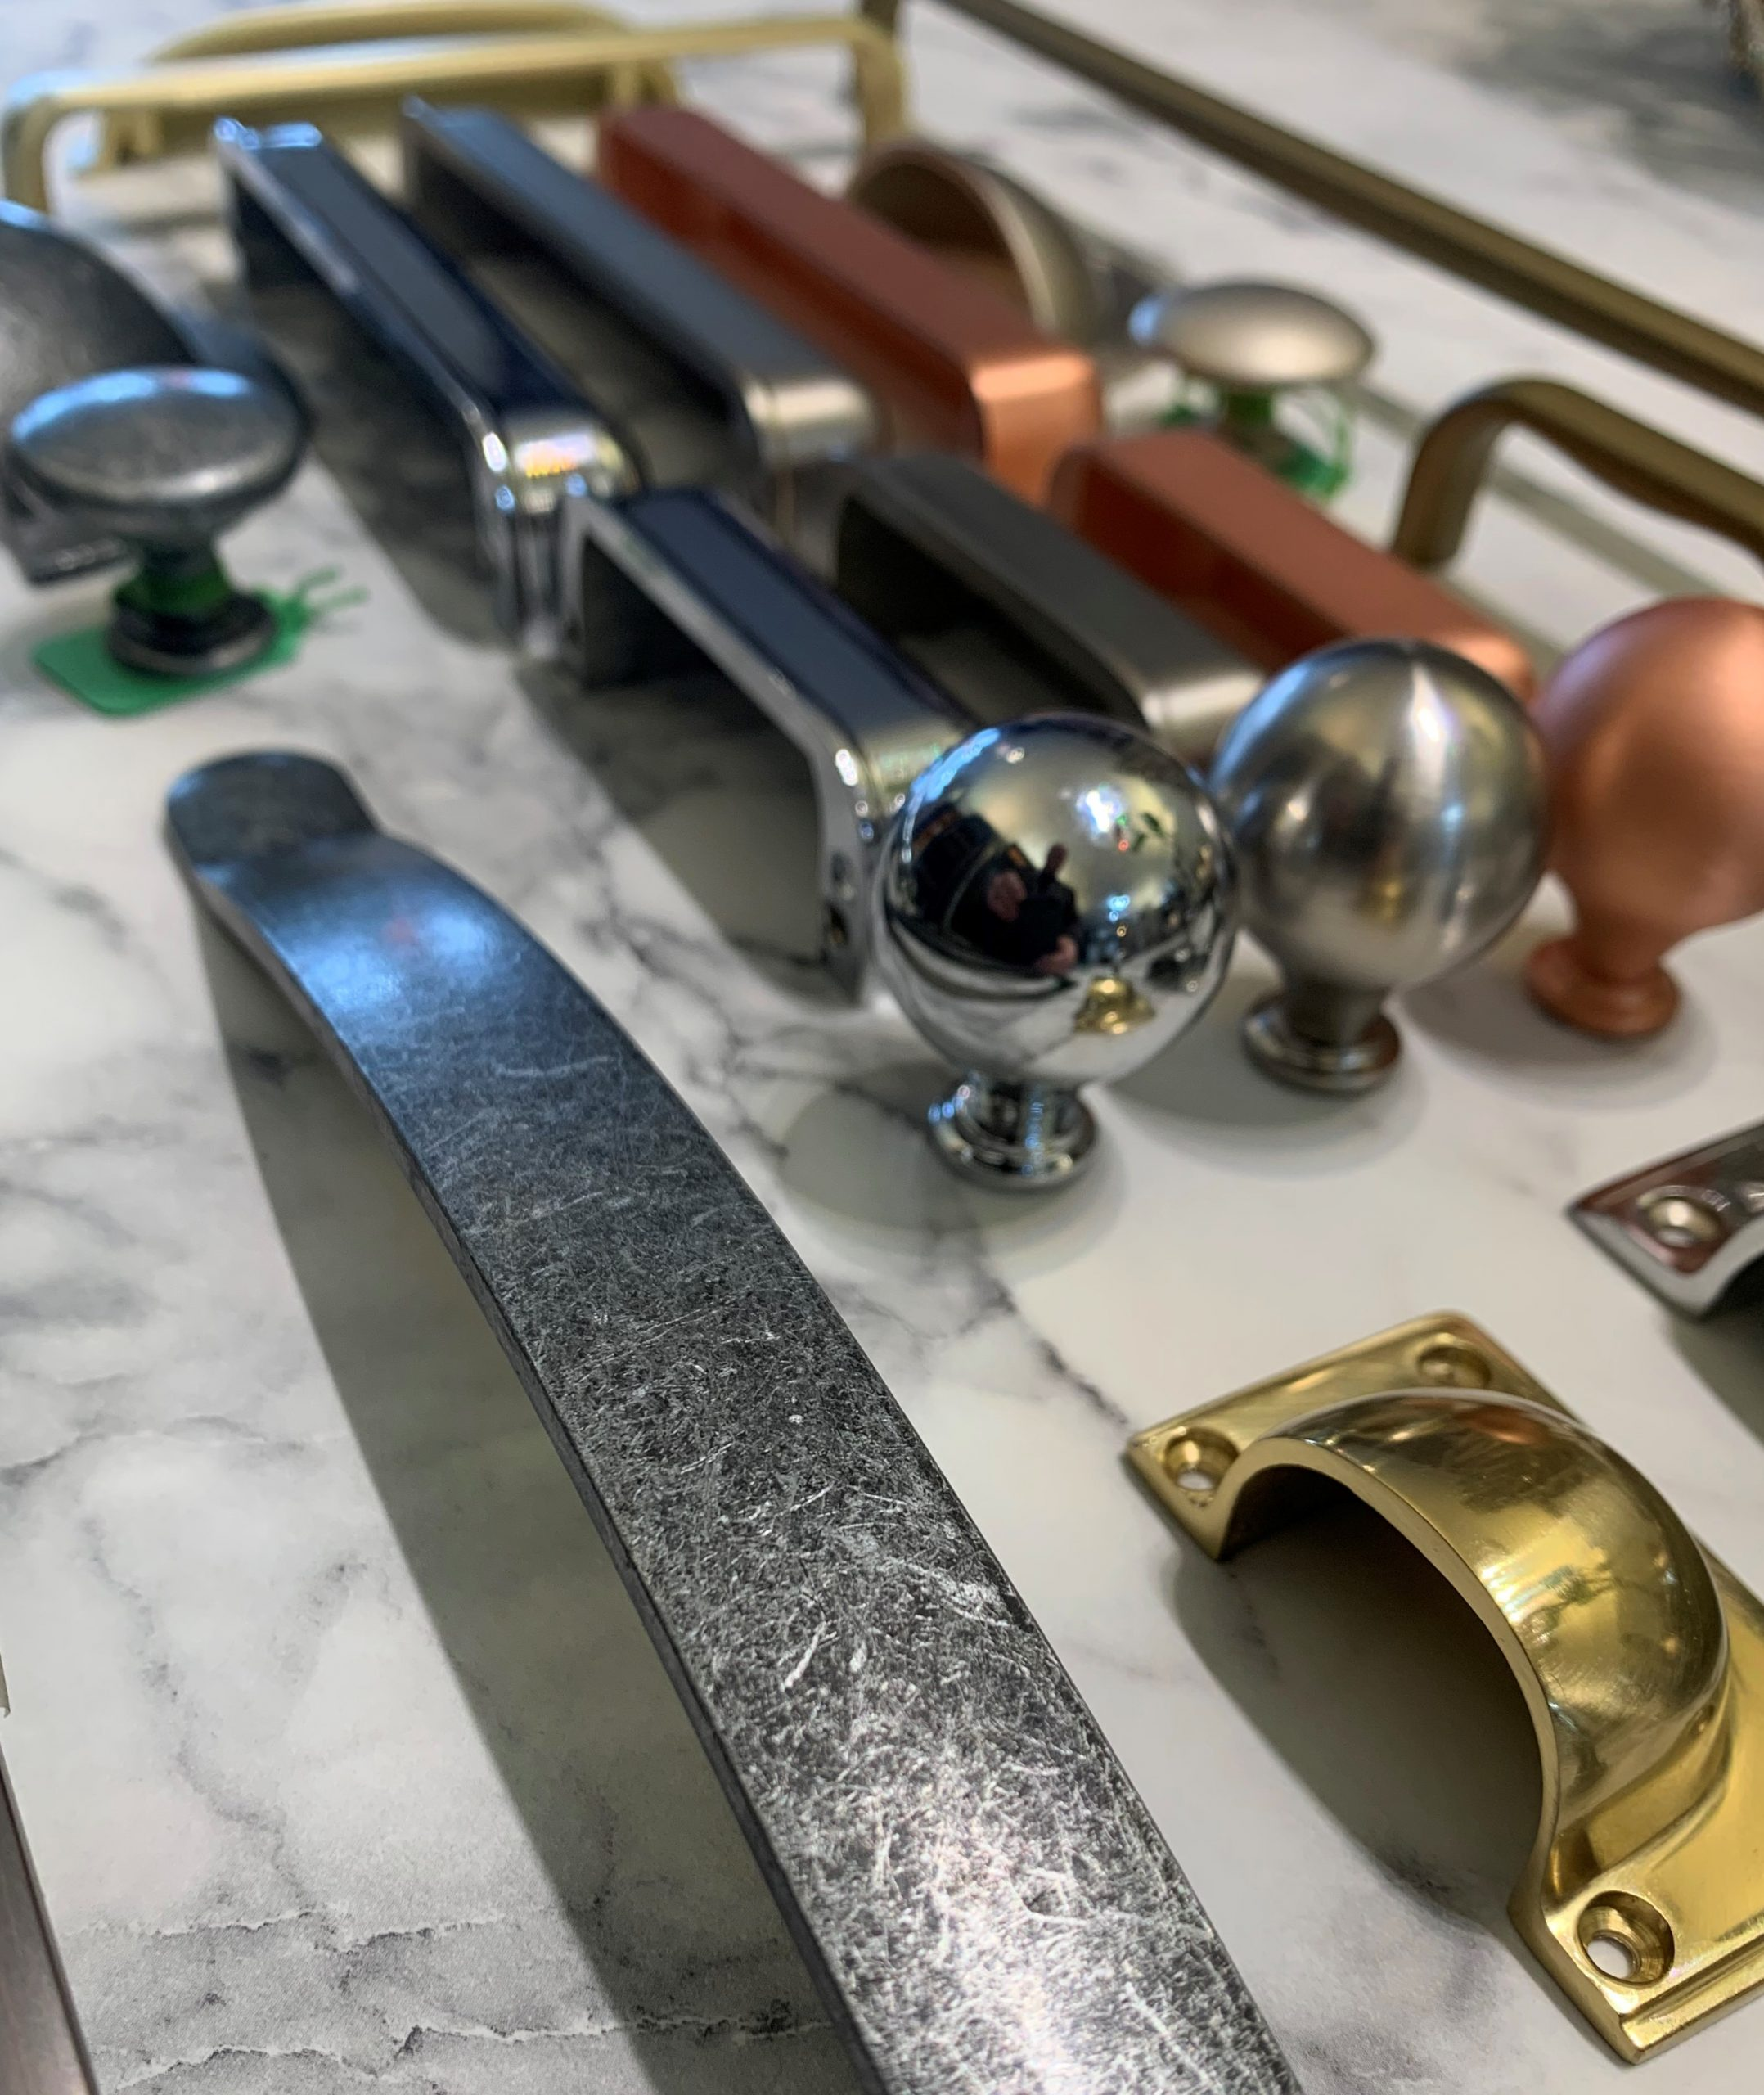 kitchen handles in a variety of metallic finishes